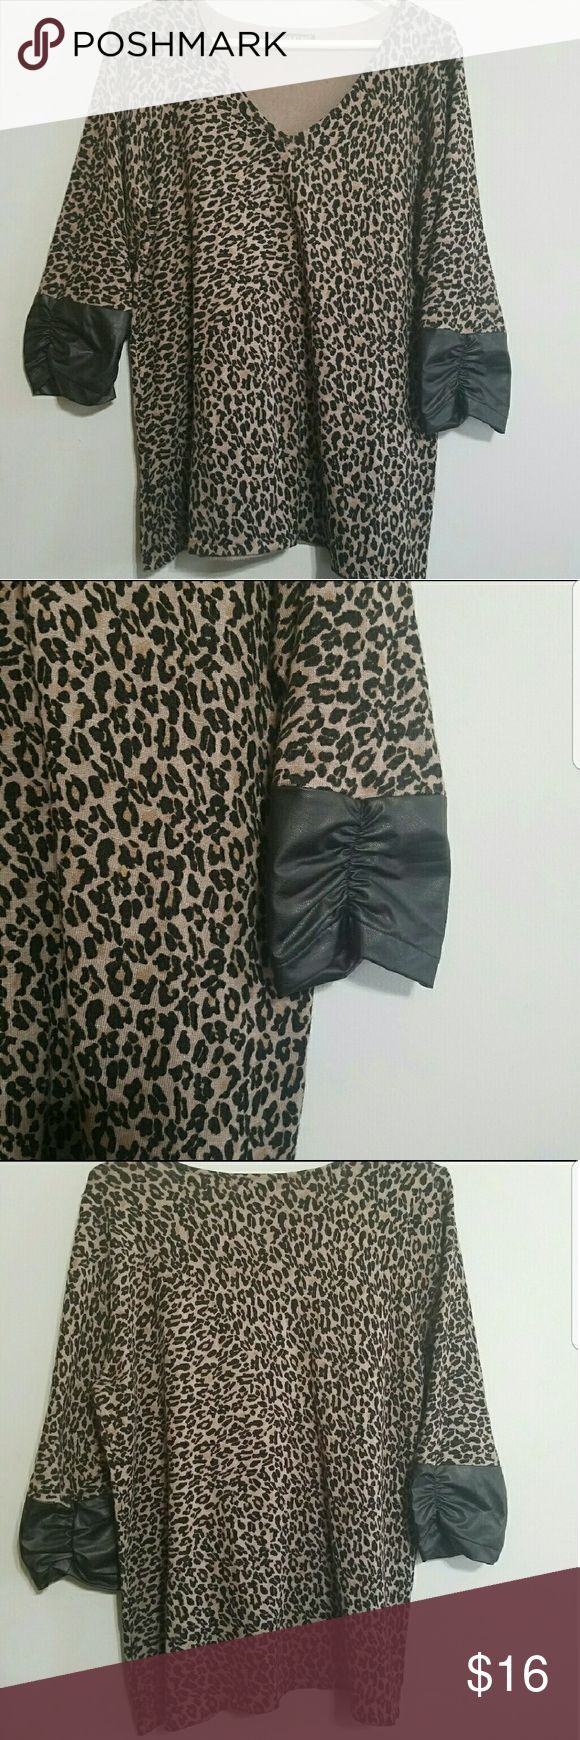 """Maurices Cheetah Print Shirt Faux Leather Size 1X Sassy! Caramel colored Leopard print. 3/4 sleeves. Faux black leather on the sleeves with ruching.  Maurices size 1 Some wash wear. Light pilling in underarm area. Gorgeous!  Approximate measurements flat- Bust-21"""" Length 28"""" Maurices Tops"""